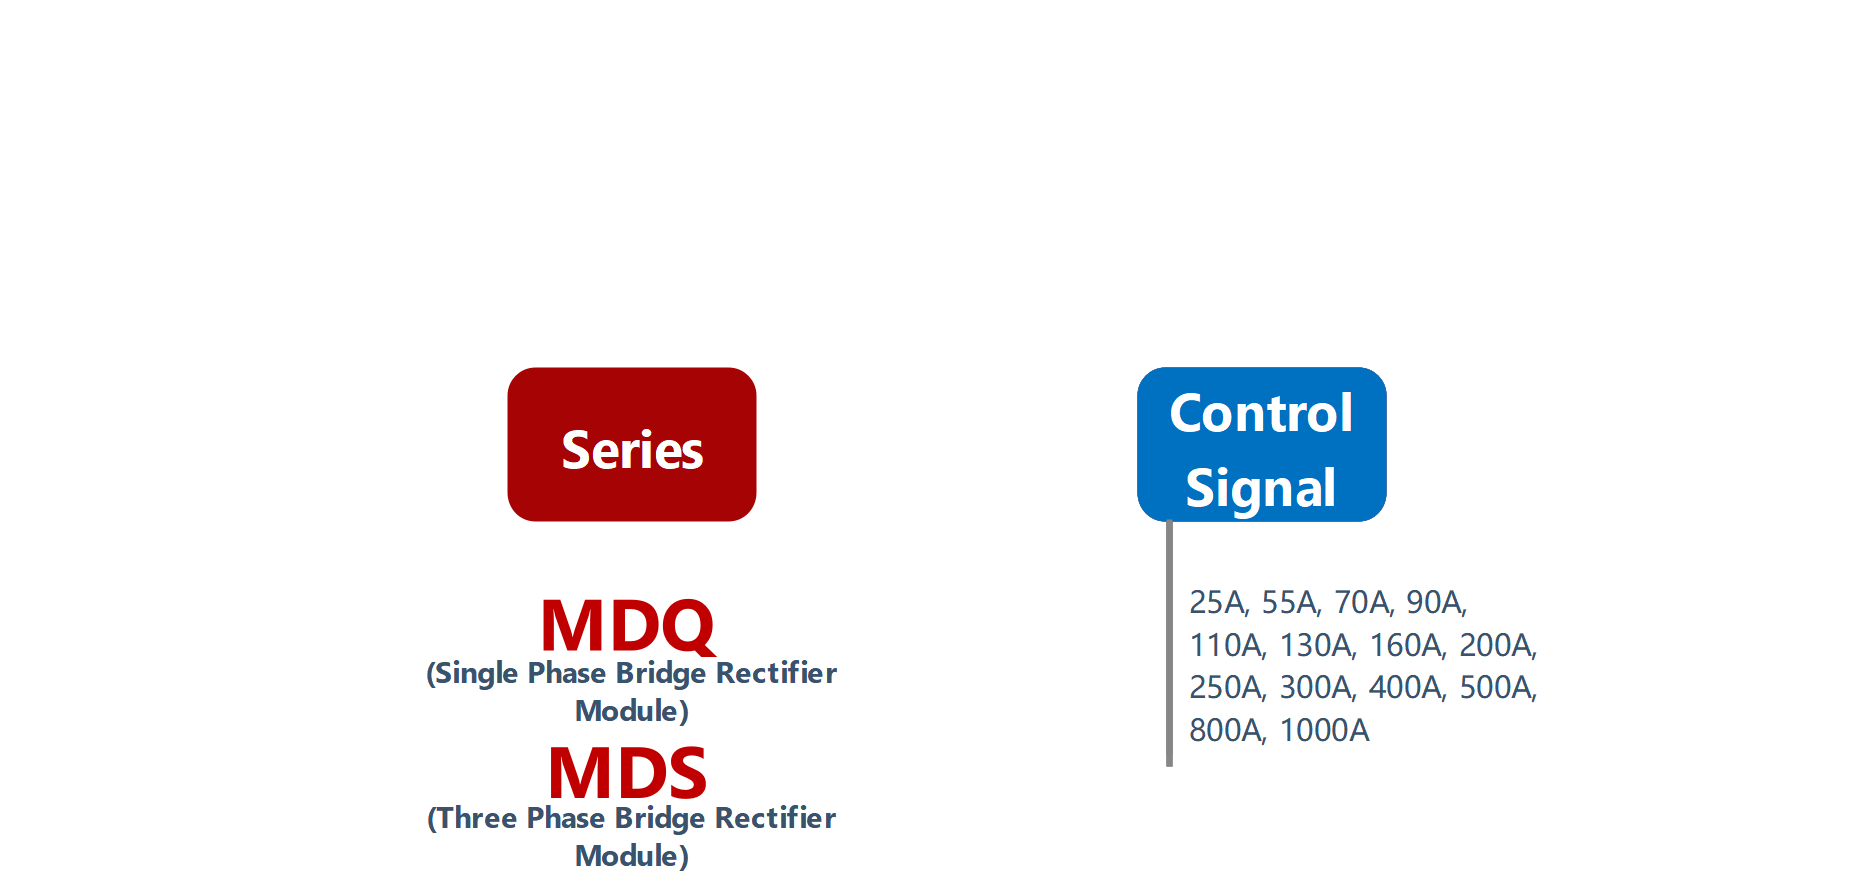 How to order MDQ, MDS Series Solid State Rectifier